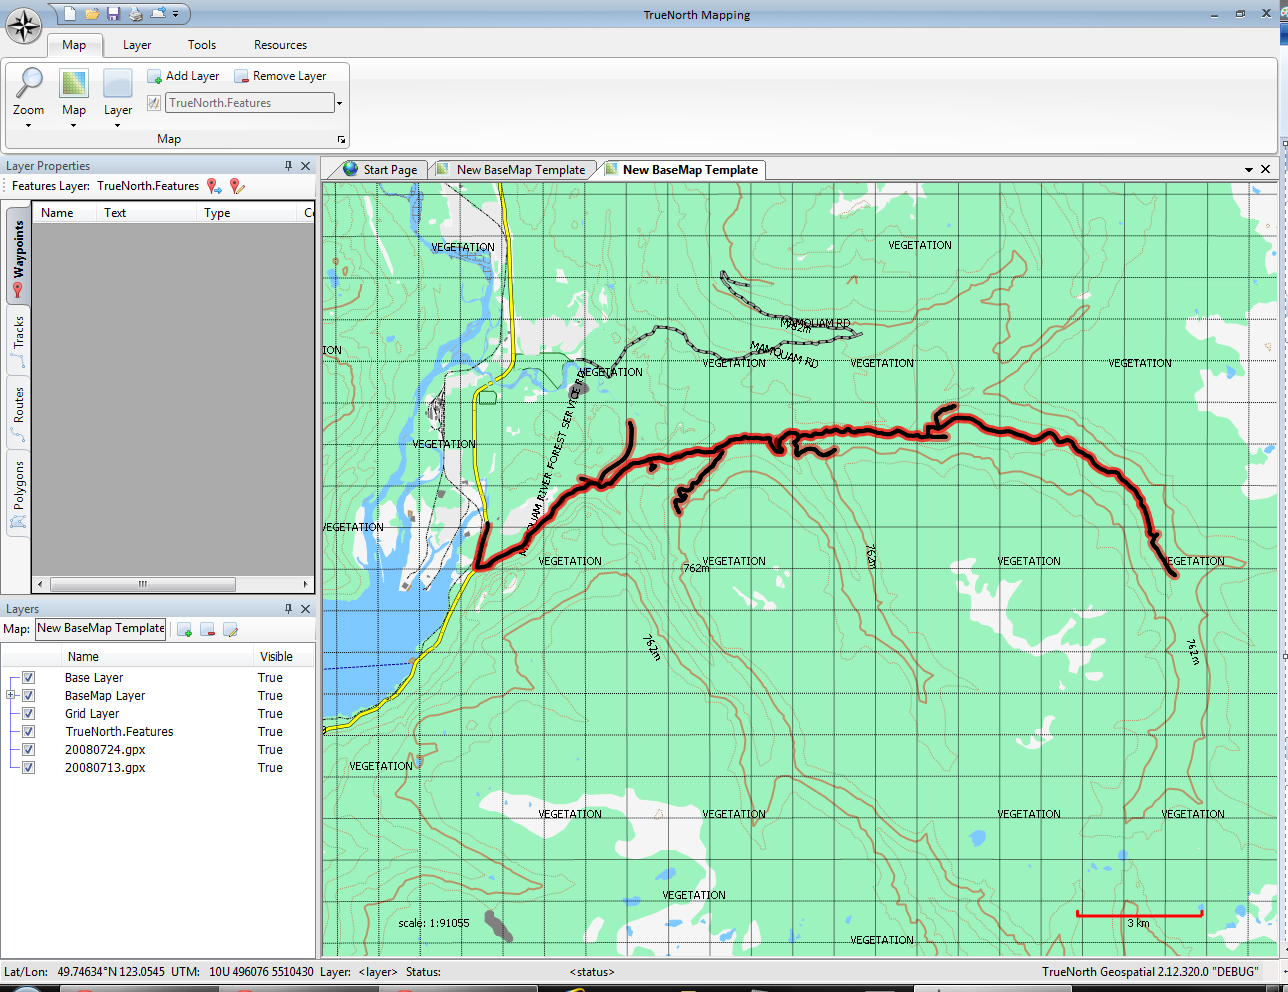 TrueNorth Geospatial | Mapping software for backcountry enthusiasts